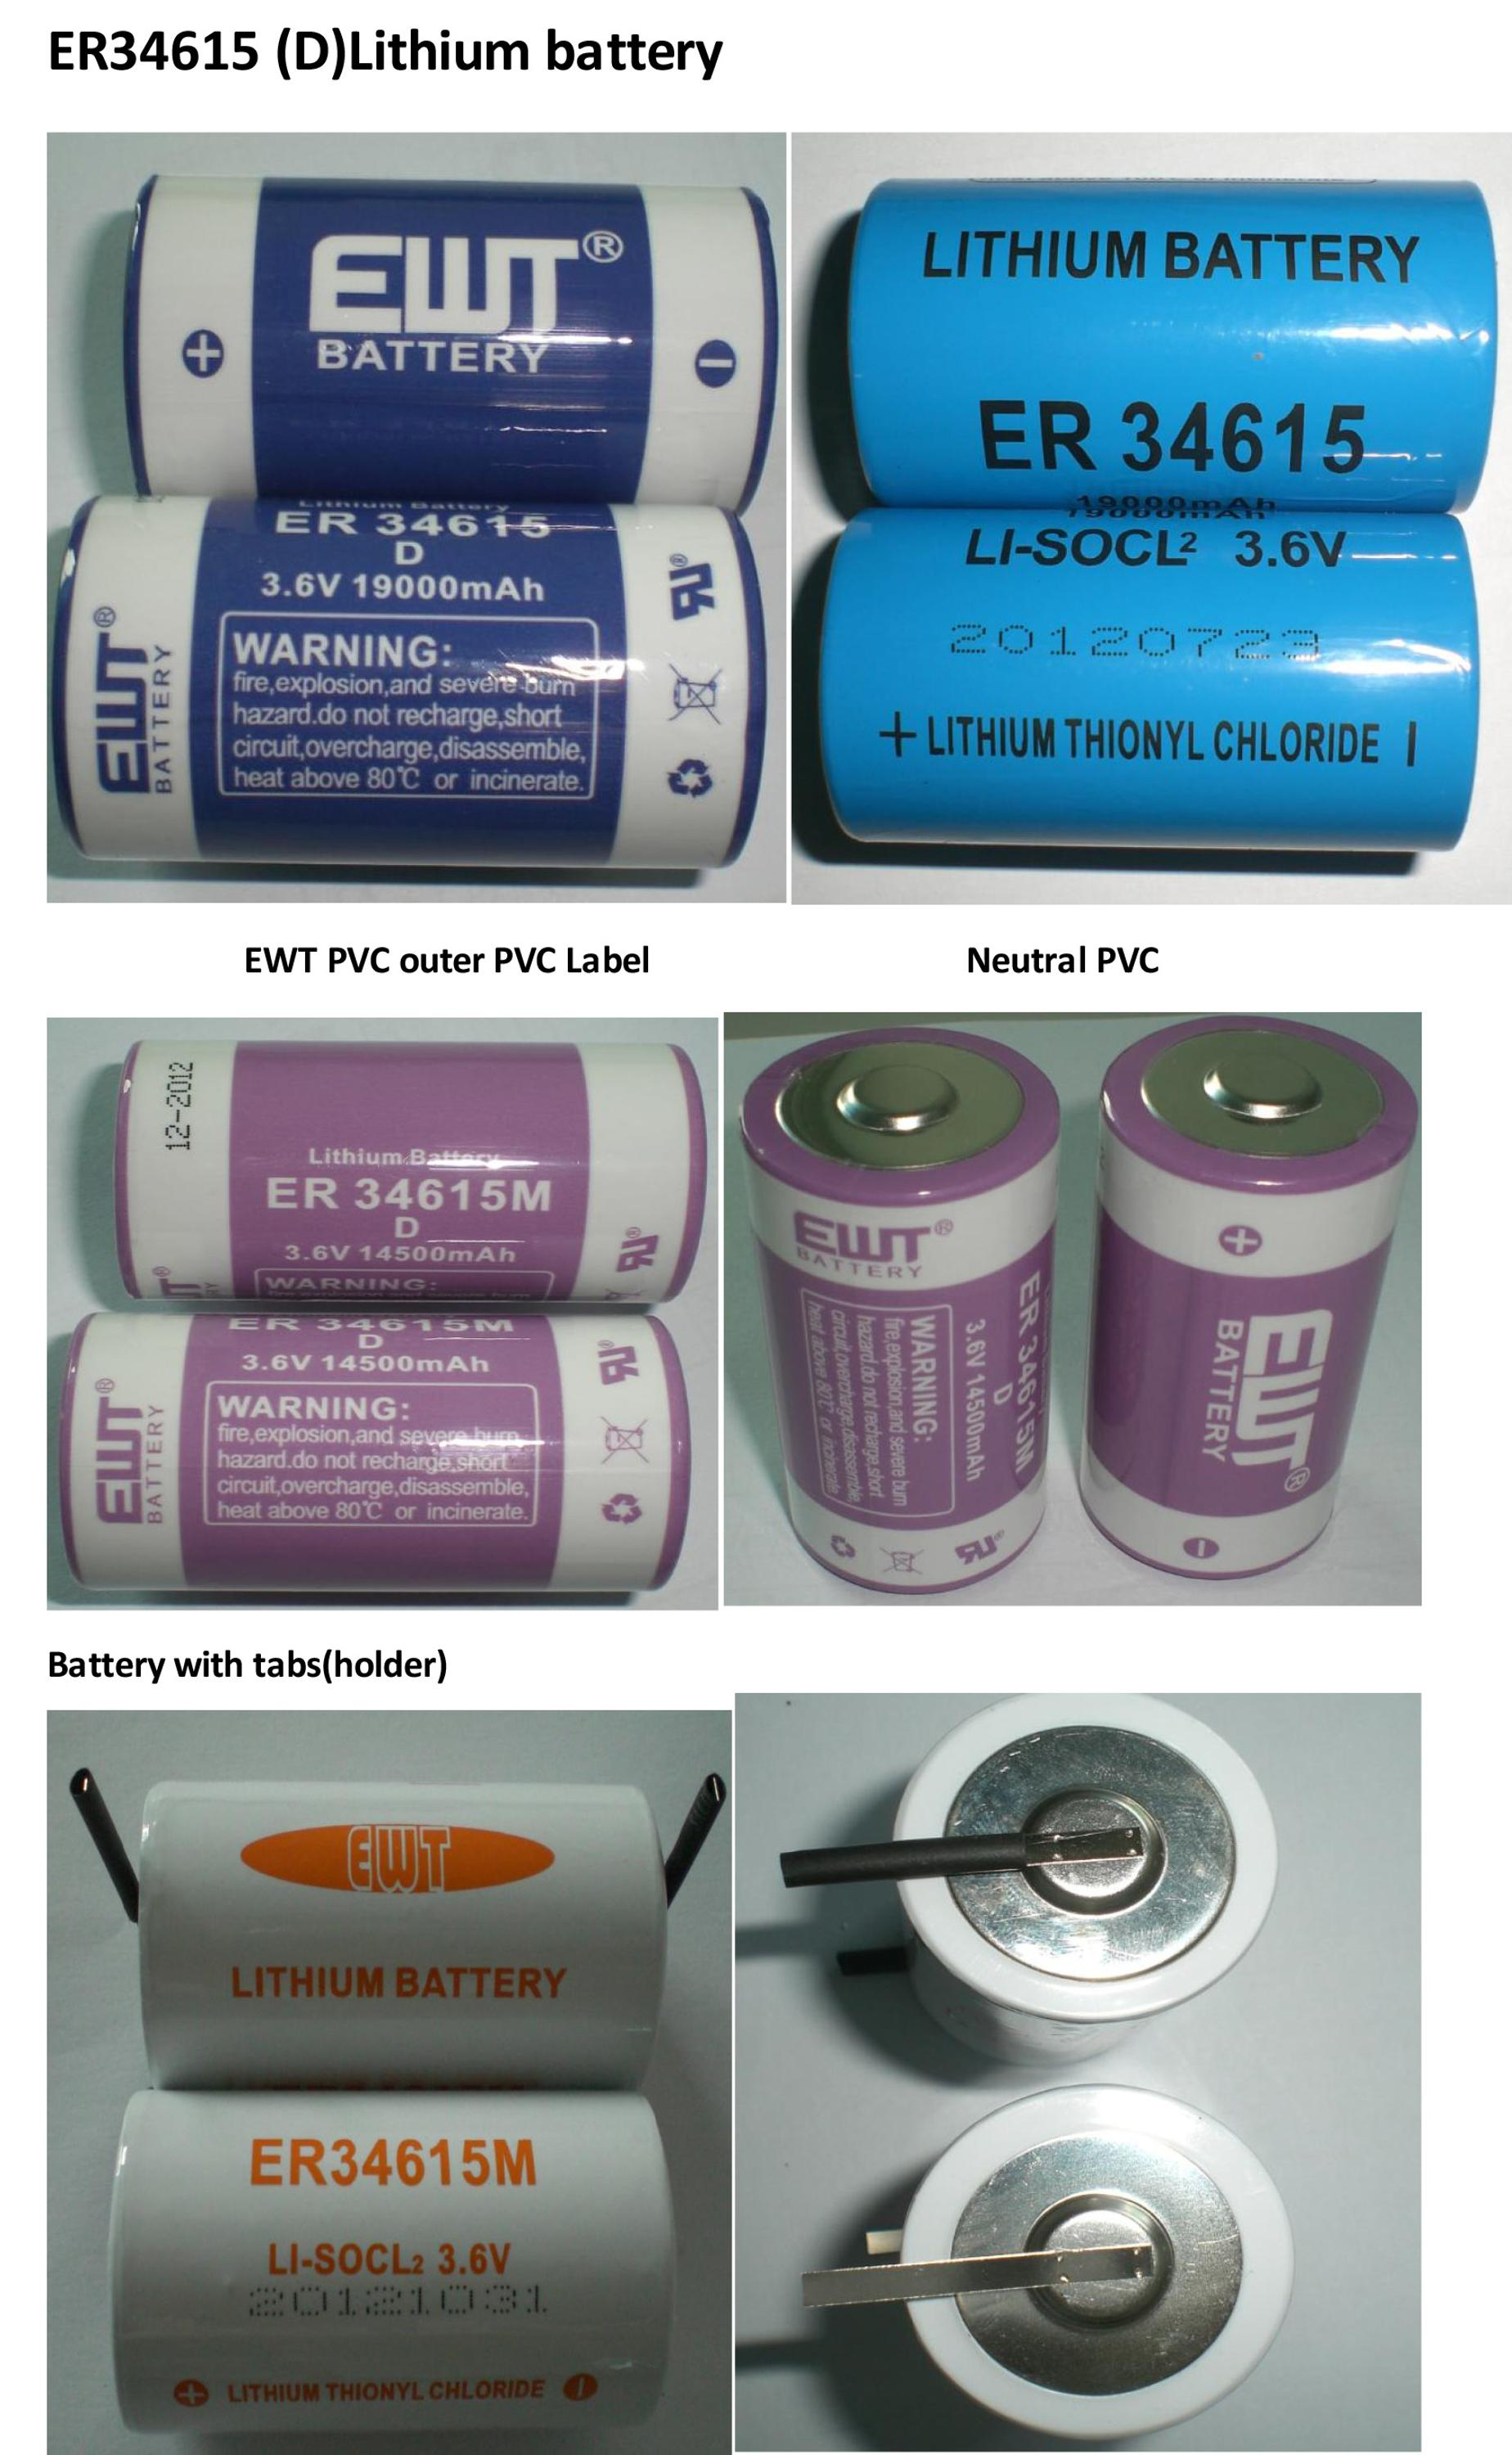 er34615s ER34615M ER34615 D size 19000mAh Lithium battery 3.6V in Thionyl Chloride Battery of Energy type